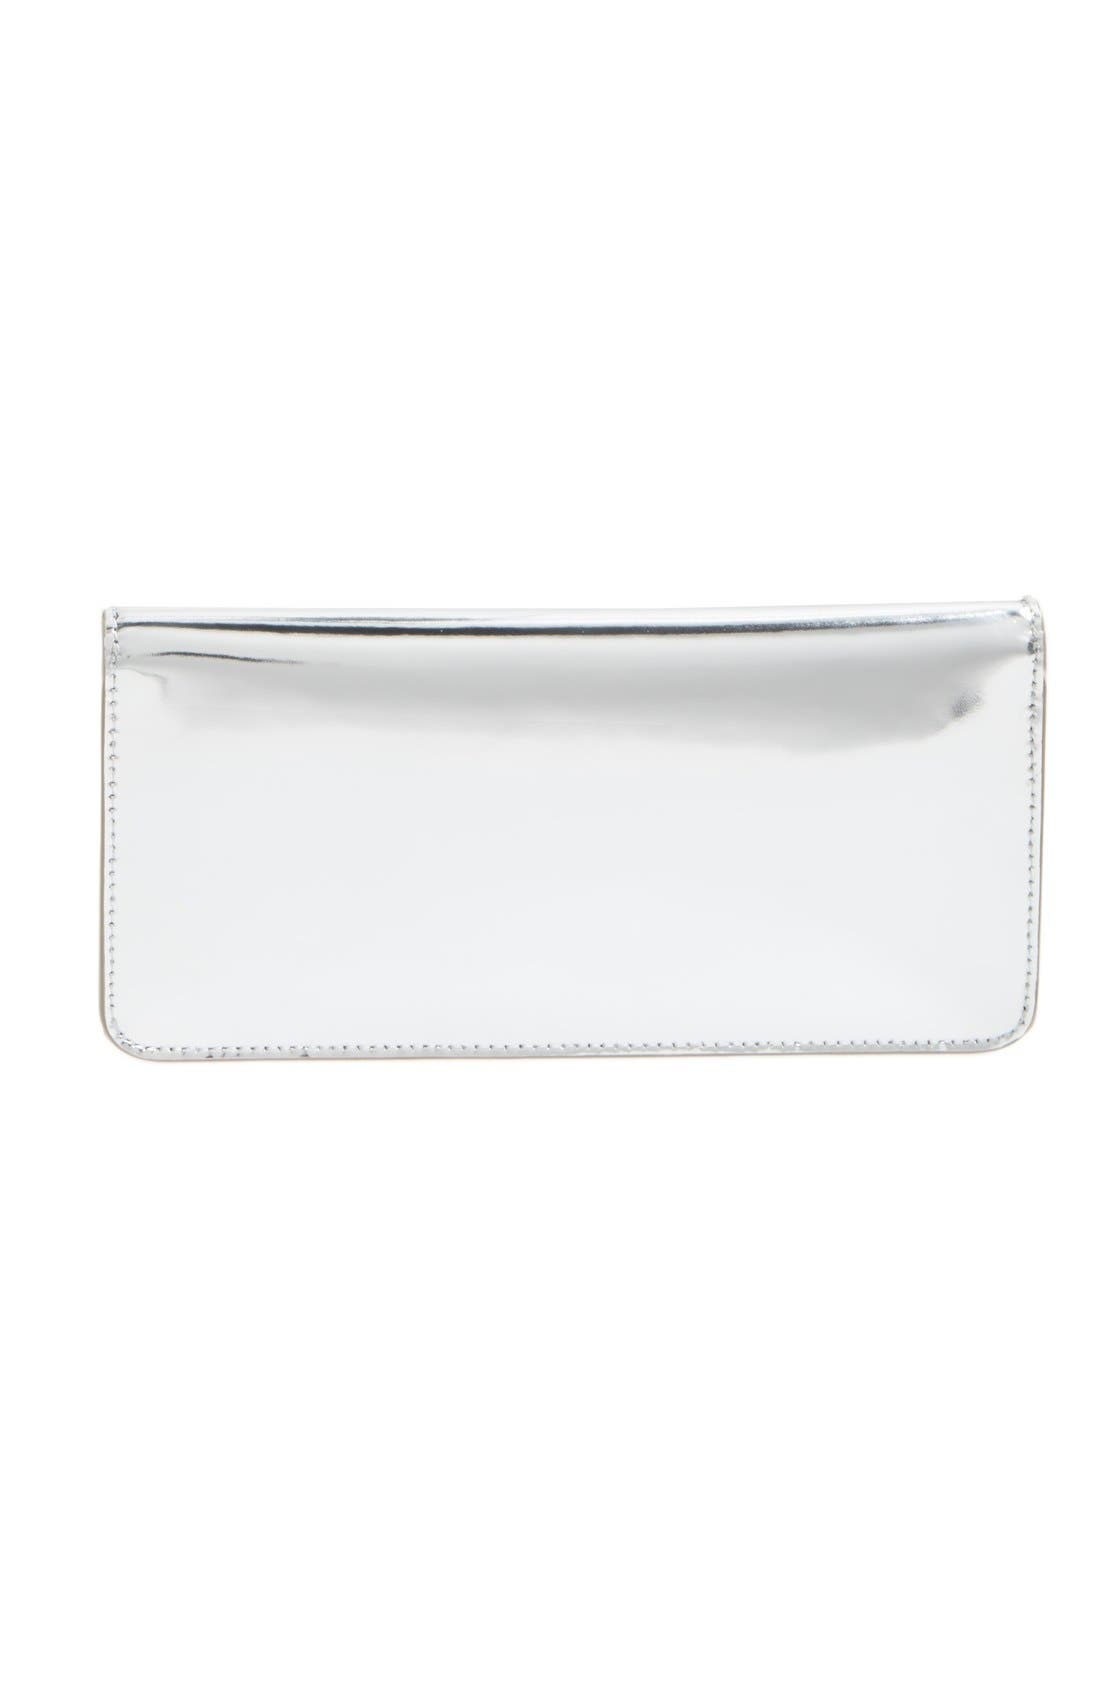 Gigi Metallic Leather Clutch,                             Alternate thumbnail 9, color,                             SILVER LEATHER STANDARD